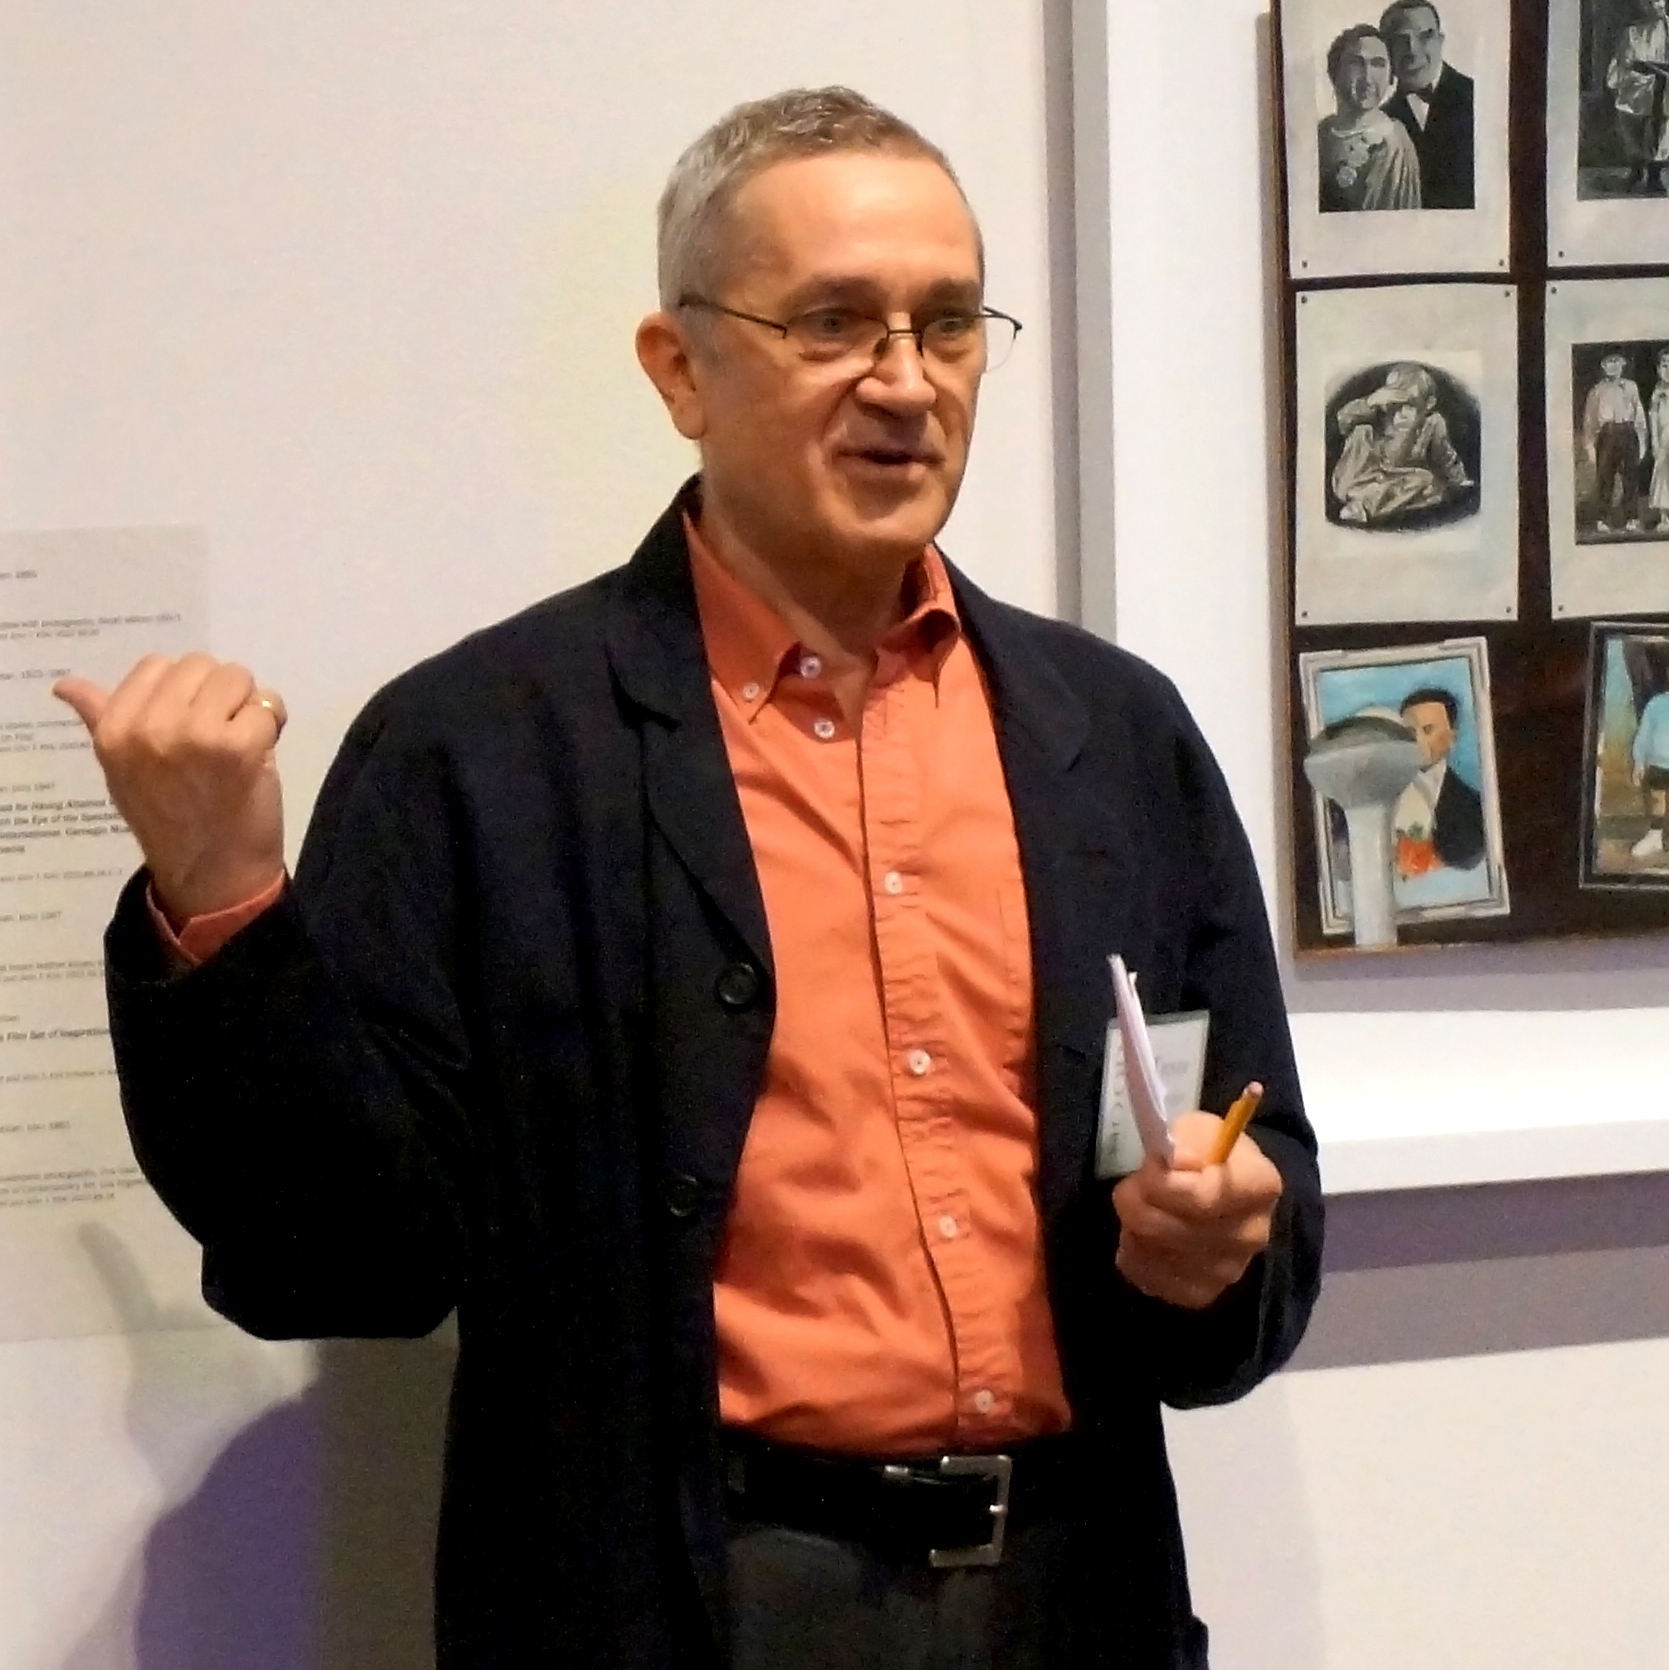 Fairbrother at the Hood Museum of Art during the Collecting and Sharing exhibition, photo by Alison Palizzolo